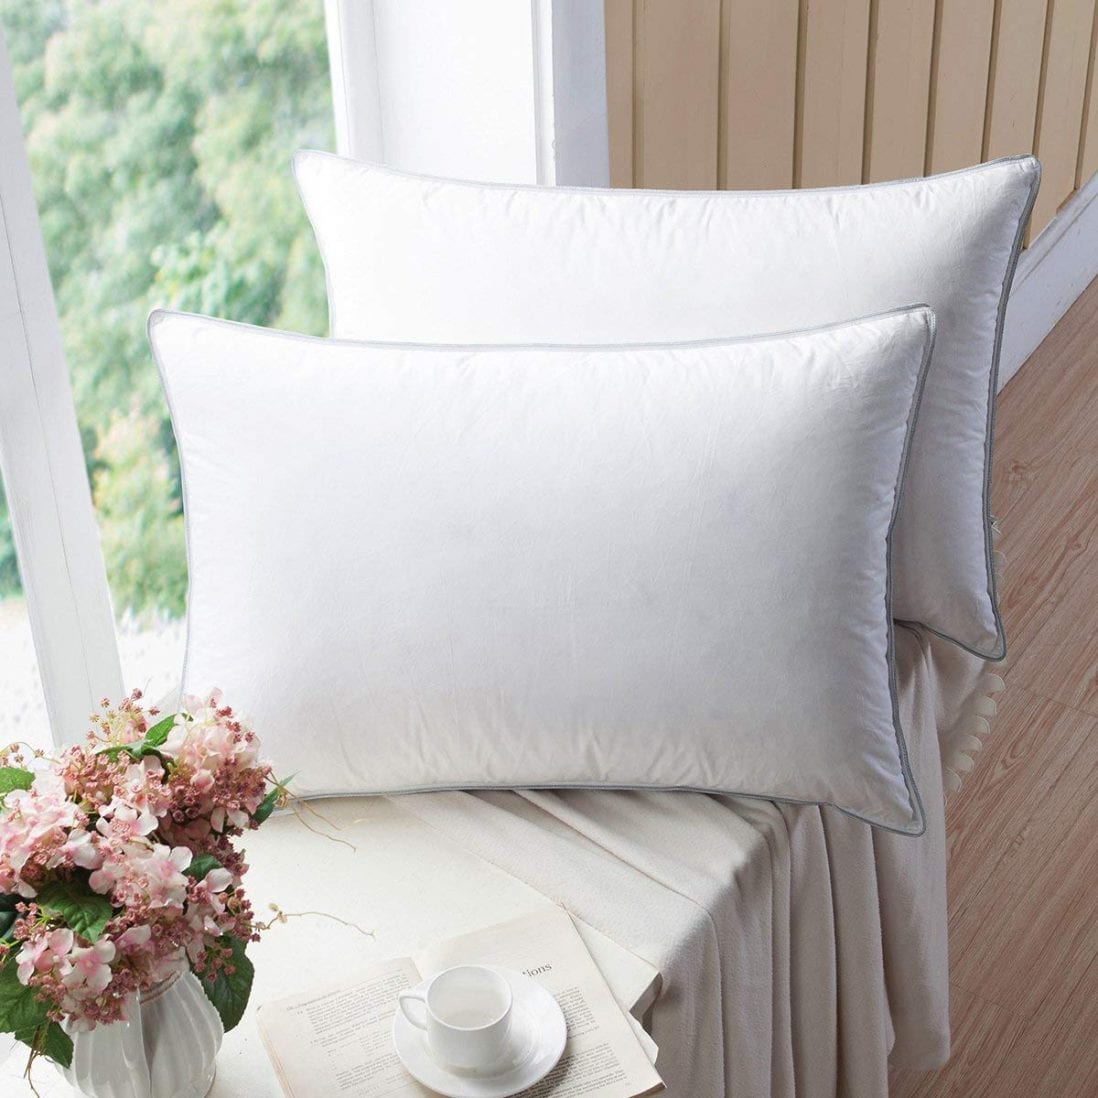 WENERSI Premium Goose Down Pillows Review and Buying Guide by www.dailysleep.com